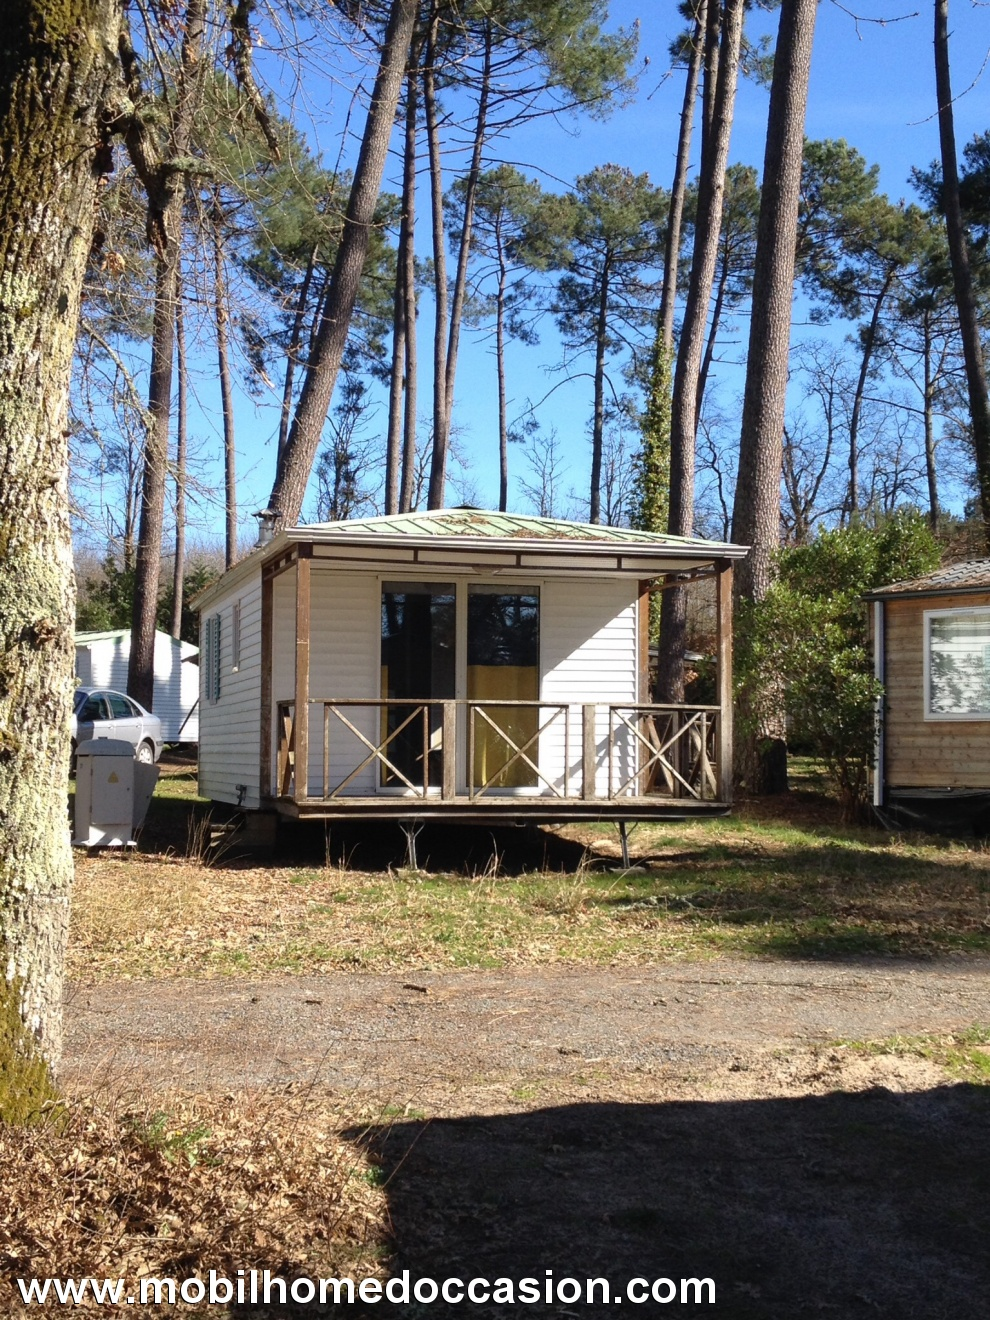 Mobilhome a vendre dans camping gironde